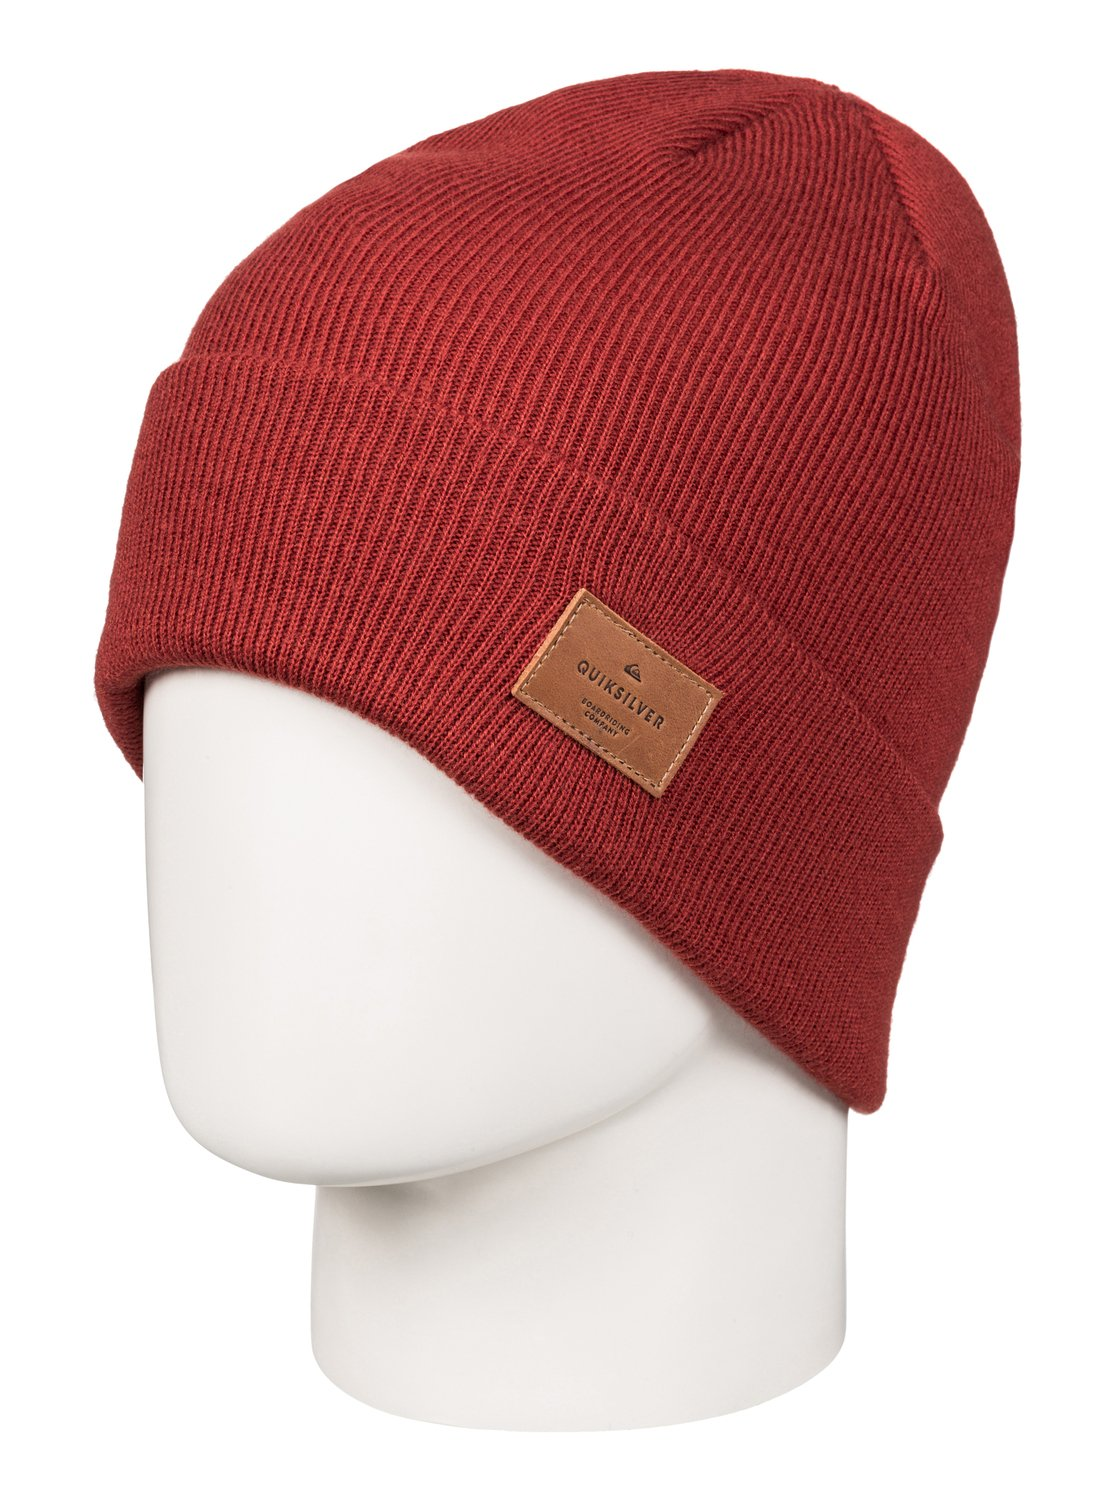 Шапка Brigade шапка quiksilver brigade beanie ketchup red